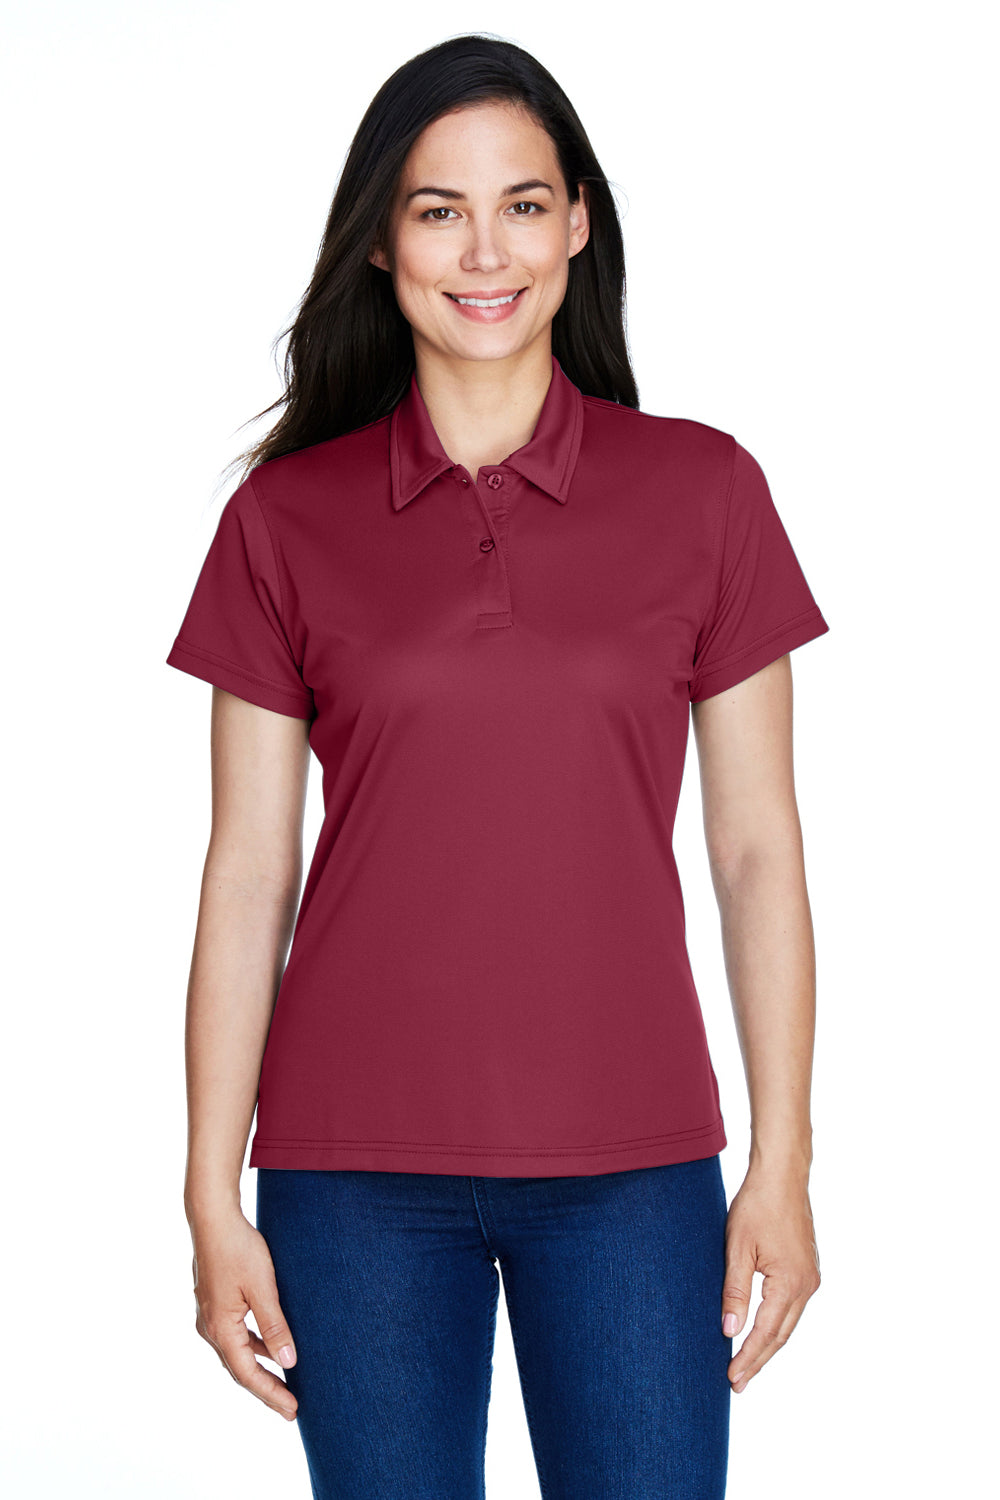 Team 365 TT21W Womens Command Performance Moisture Wicking Short Sleeve Polo Shirt Maroon Front